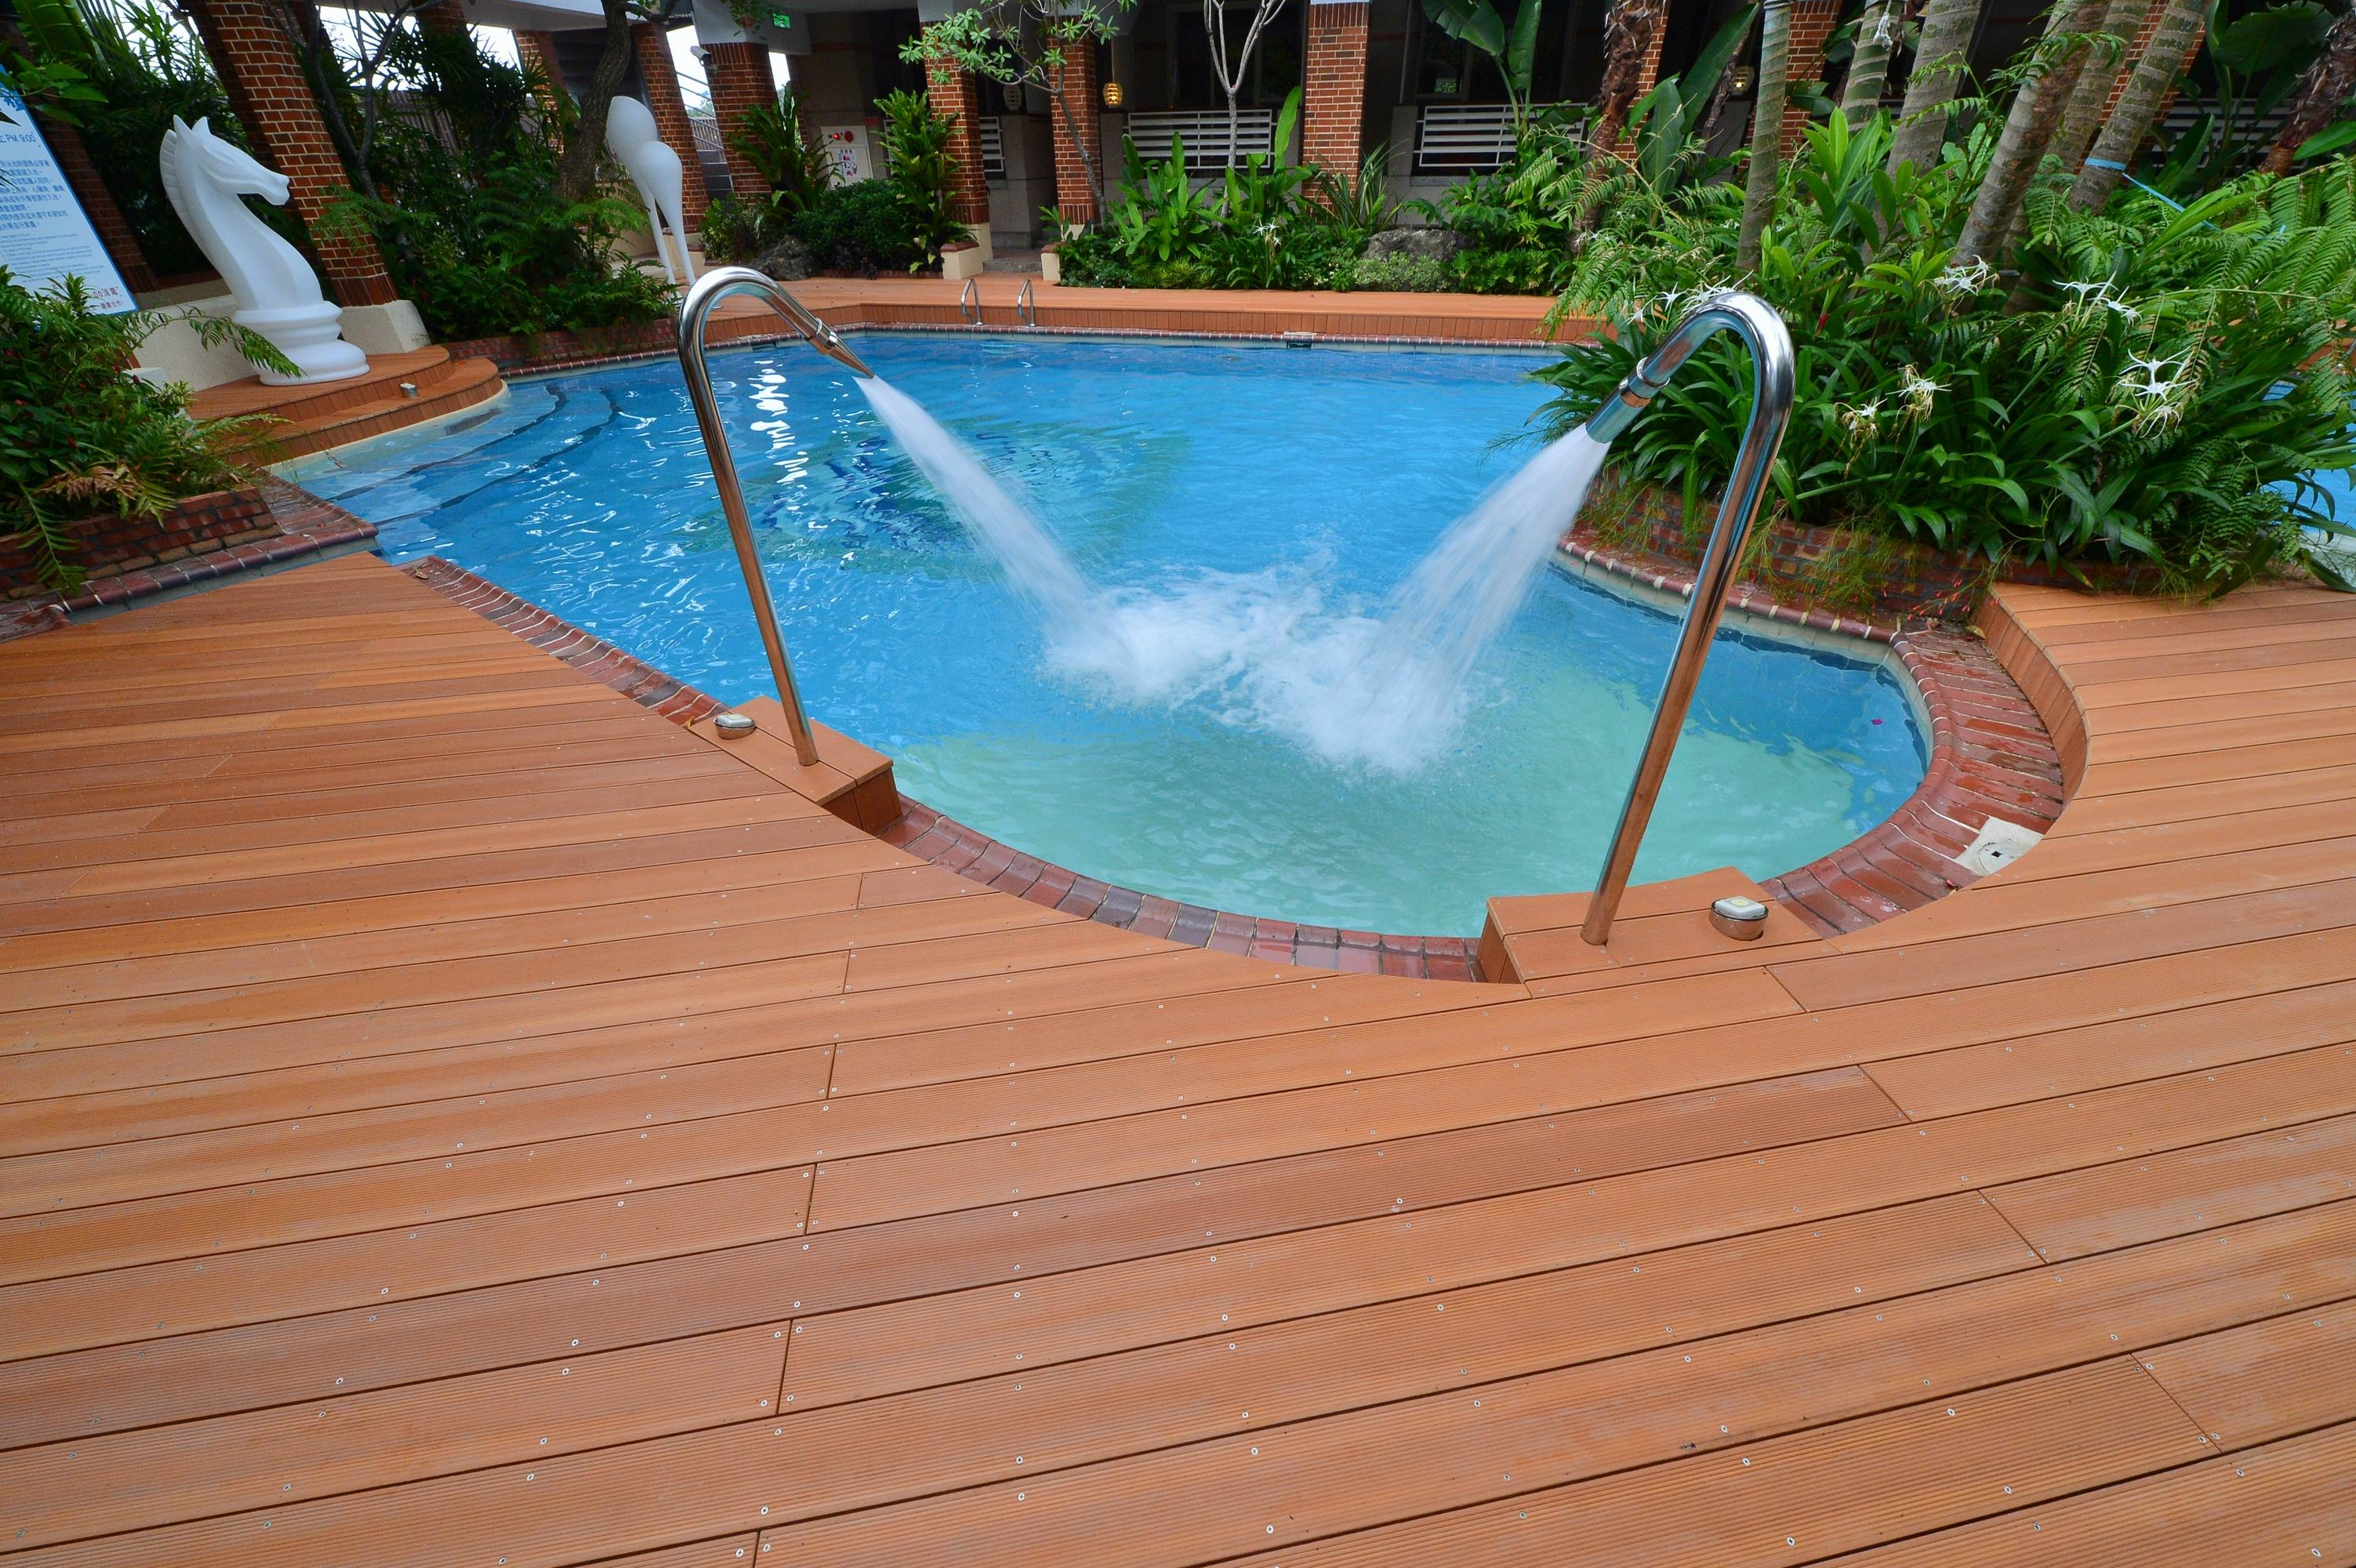 Water Feature on Decked Swimming Pool